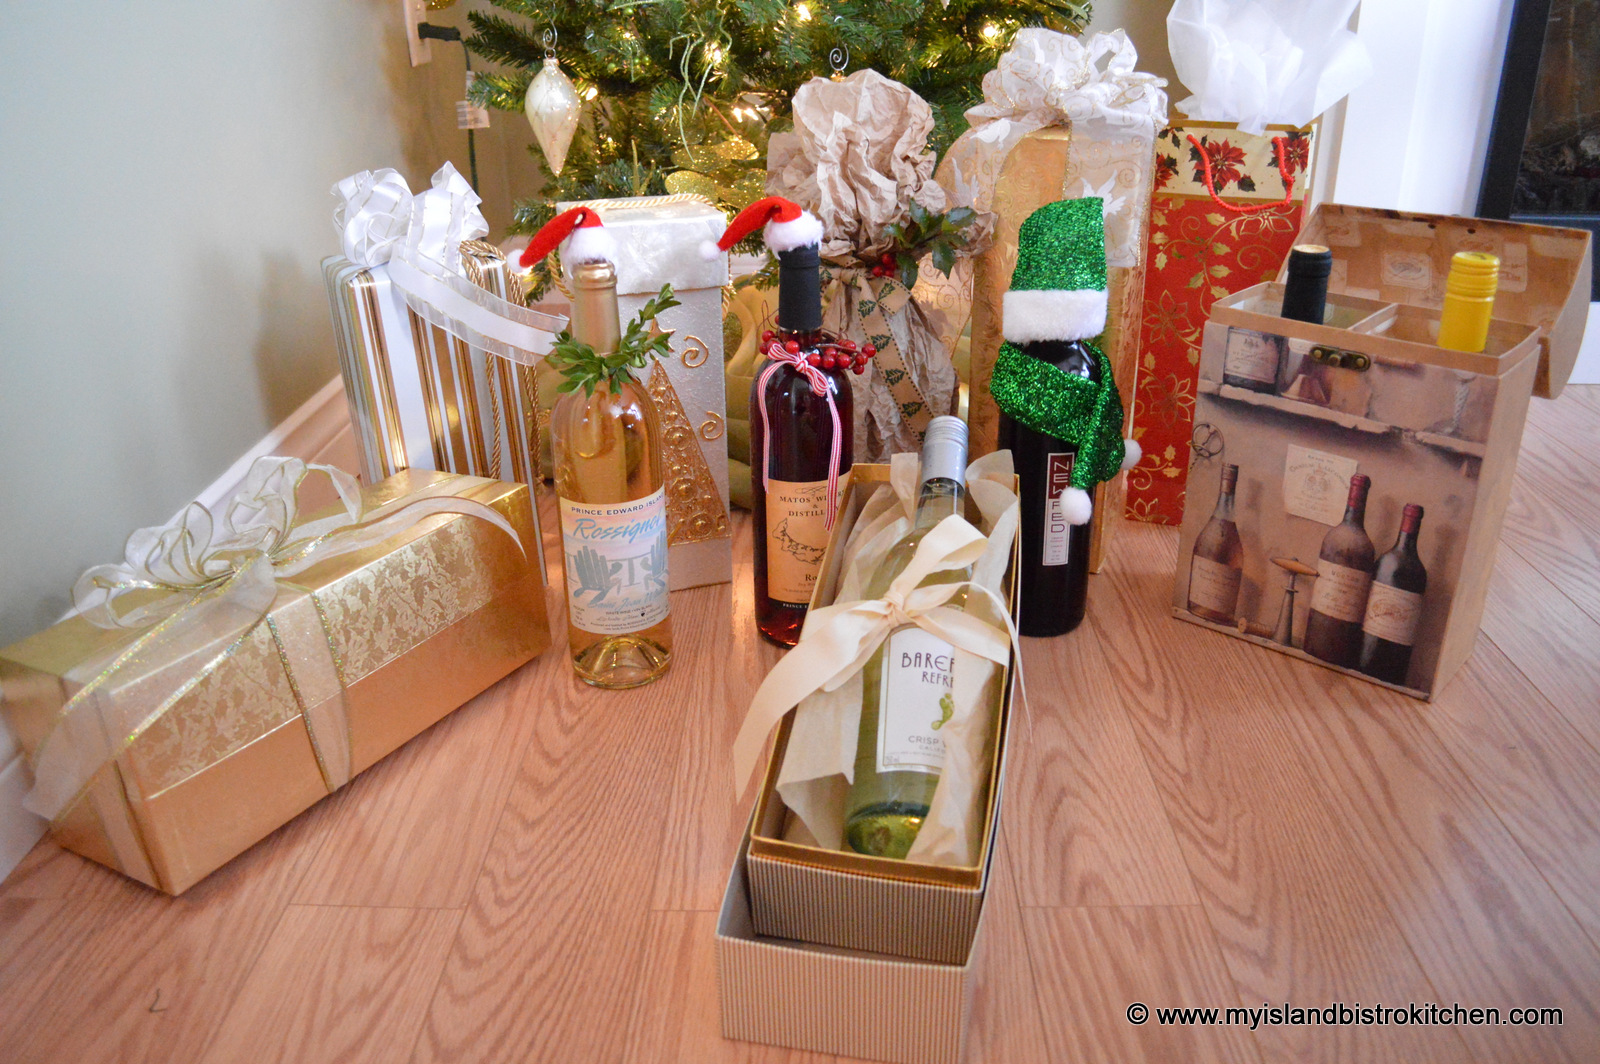 Decorated wine bottles archives my island bistro kitchen for How to decorate a wine bottle for a gift